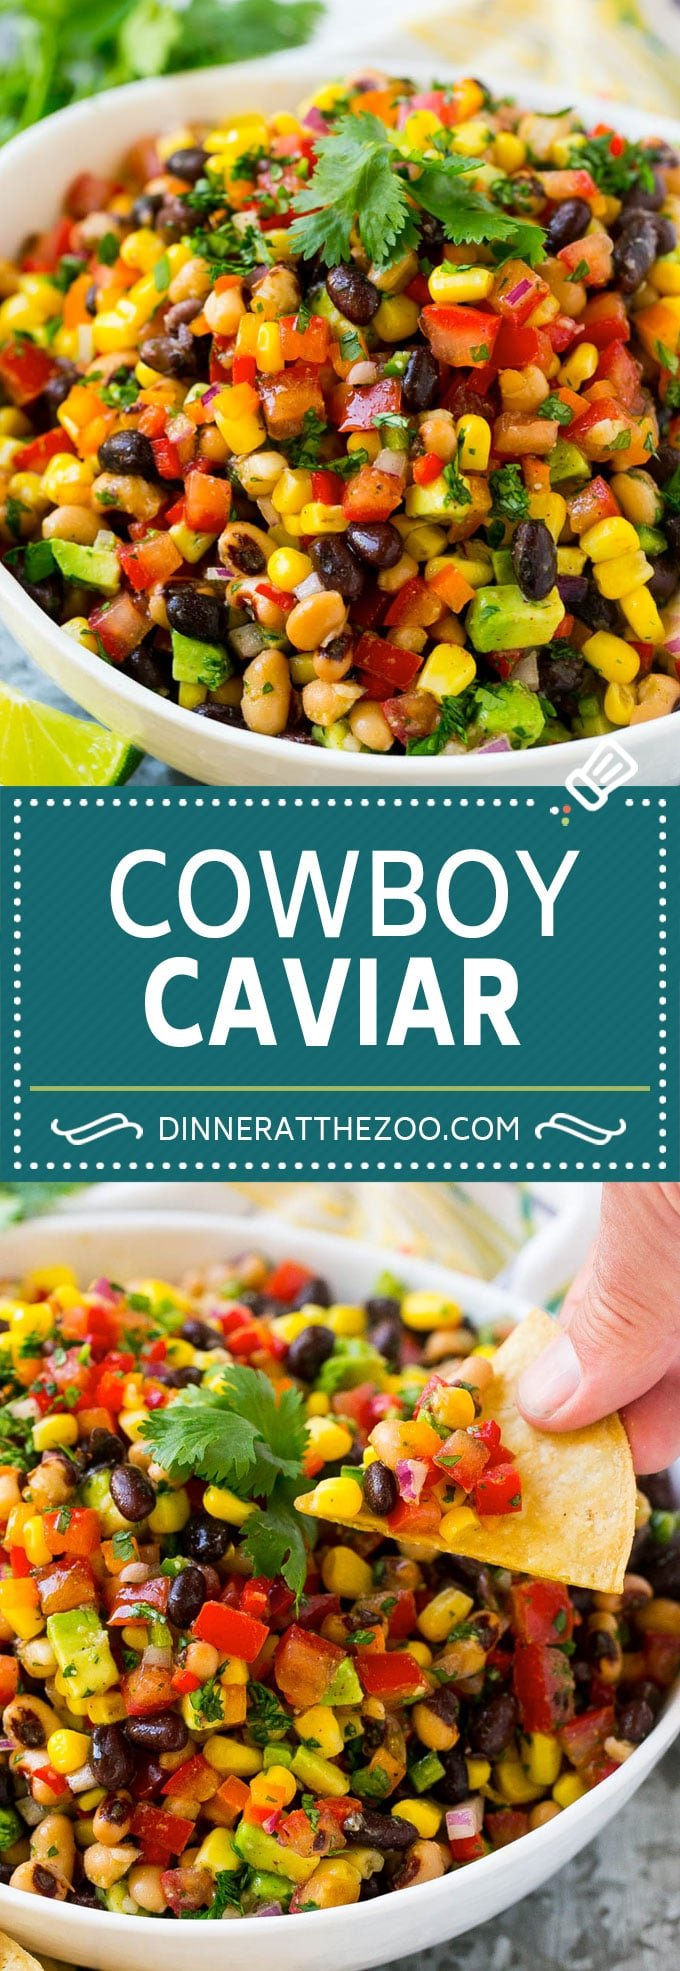 Cowboy Caviar Recipe | Bean Salad Recipe | Bean Dip Recipe | Corn and Bean Dip #beans #corn #avocado #dip #appetizer #dinneratthezoo